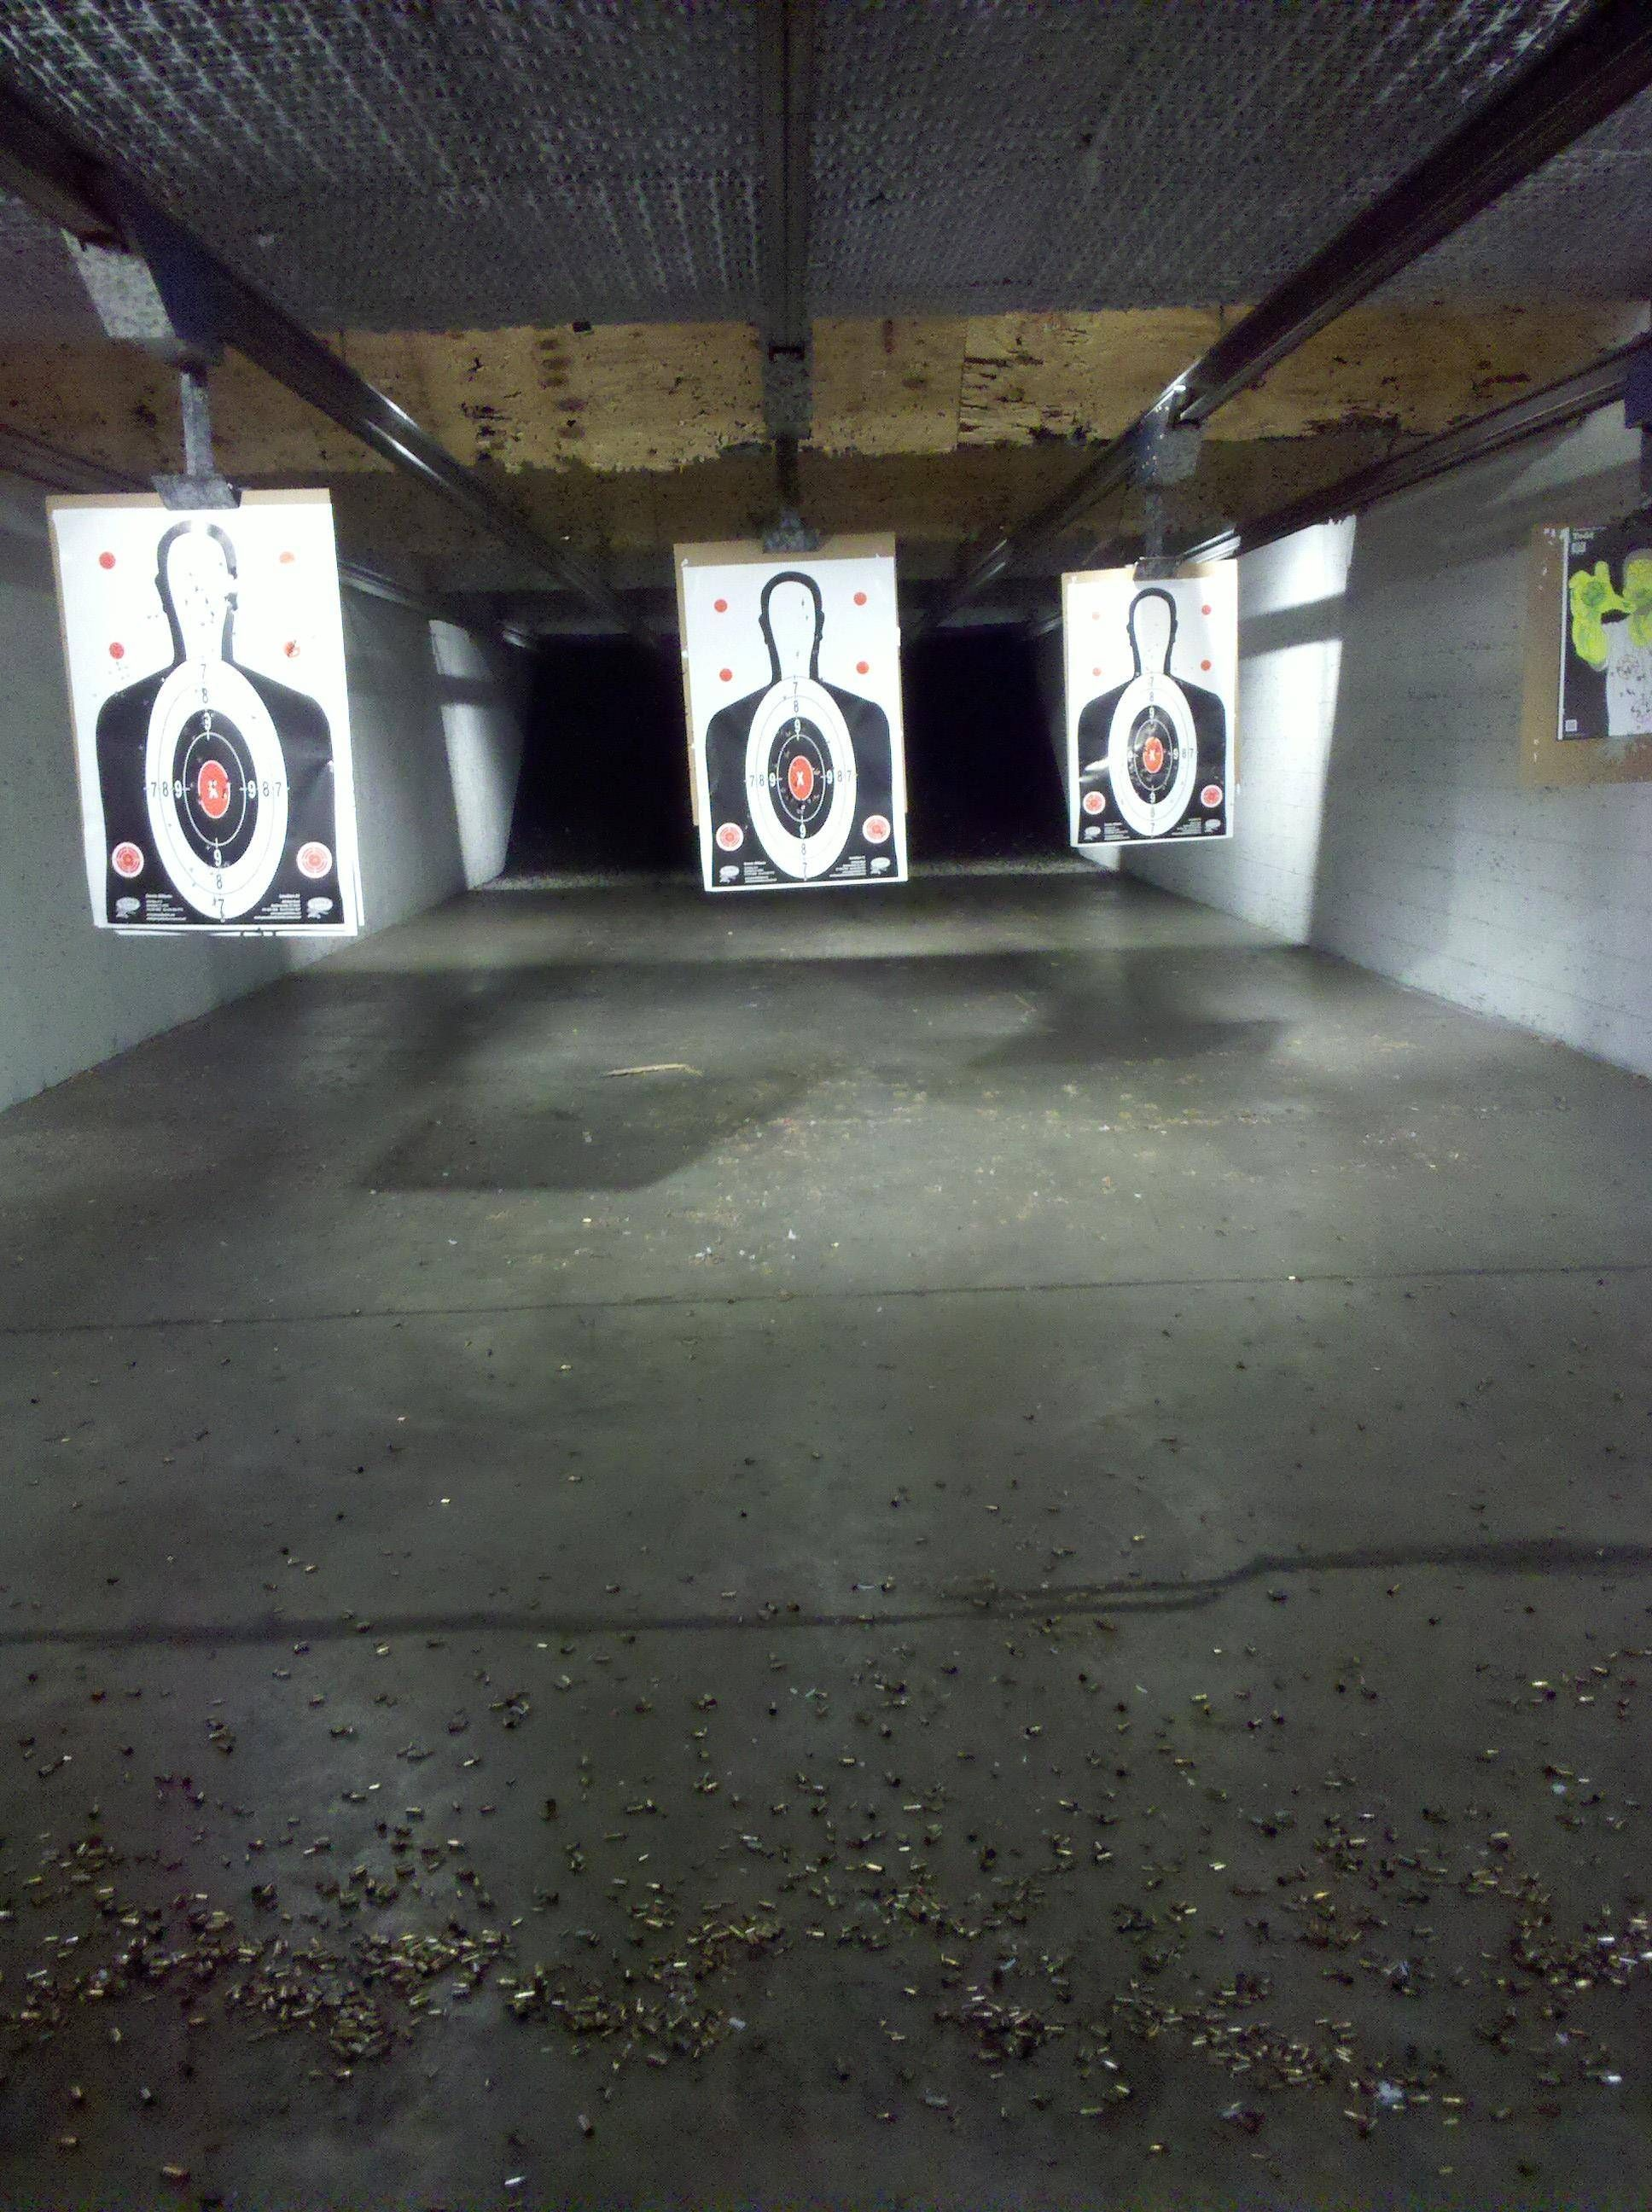 love a shooting range in my basement hidden somewhere farm